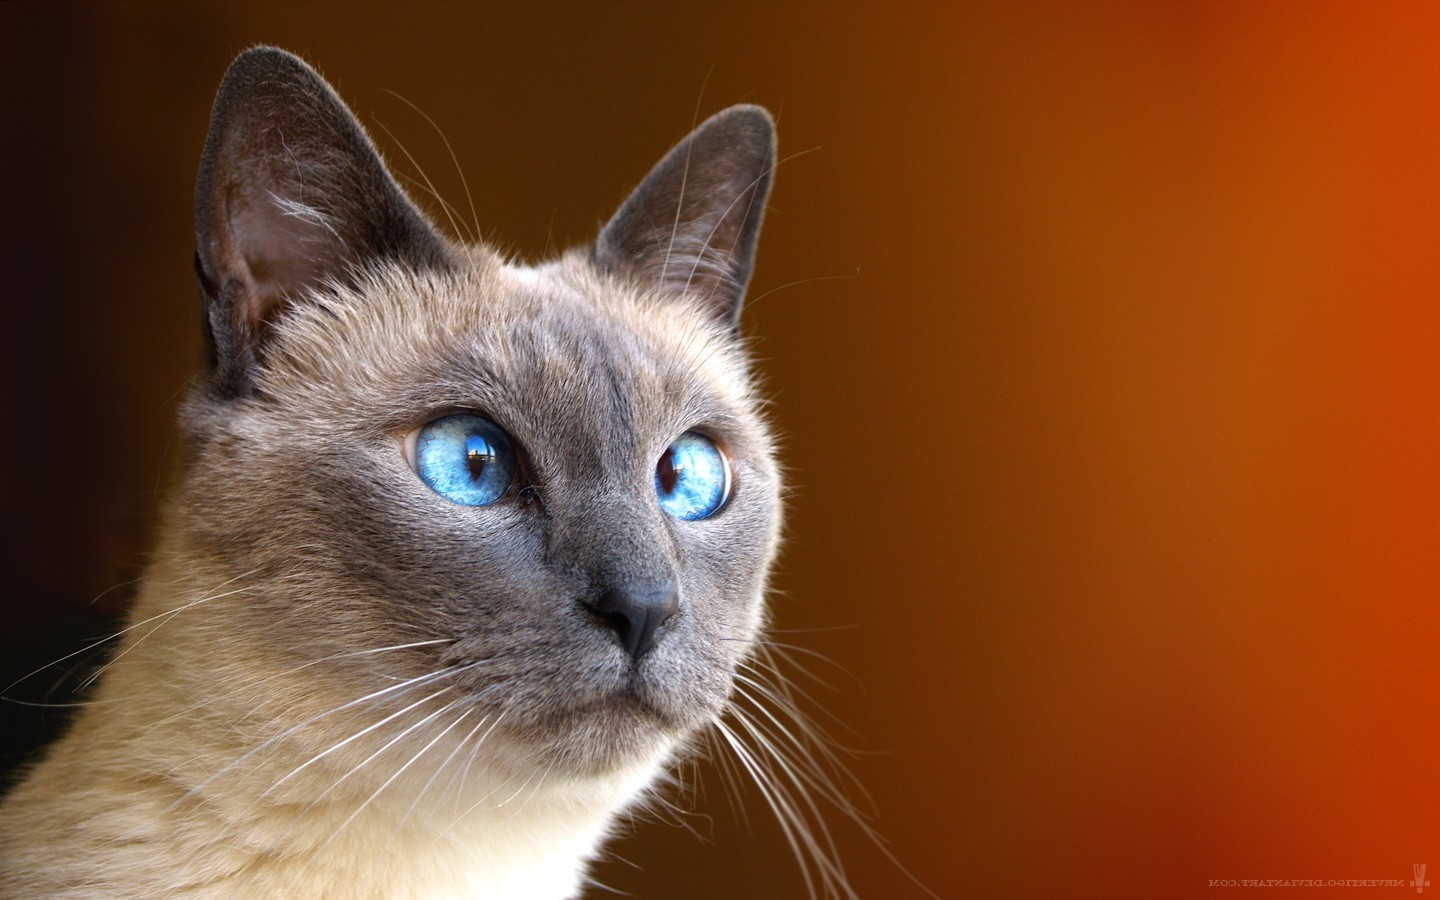 Cute Silly Wallpapers Animals Cat Feline Siamese Cats Wallpapers Hd Desktop